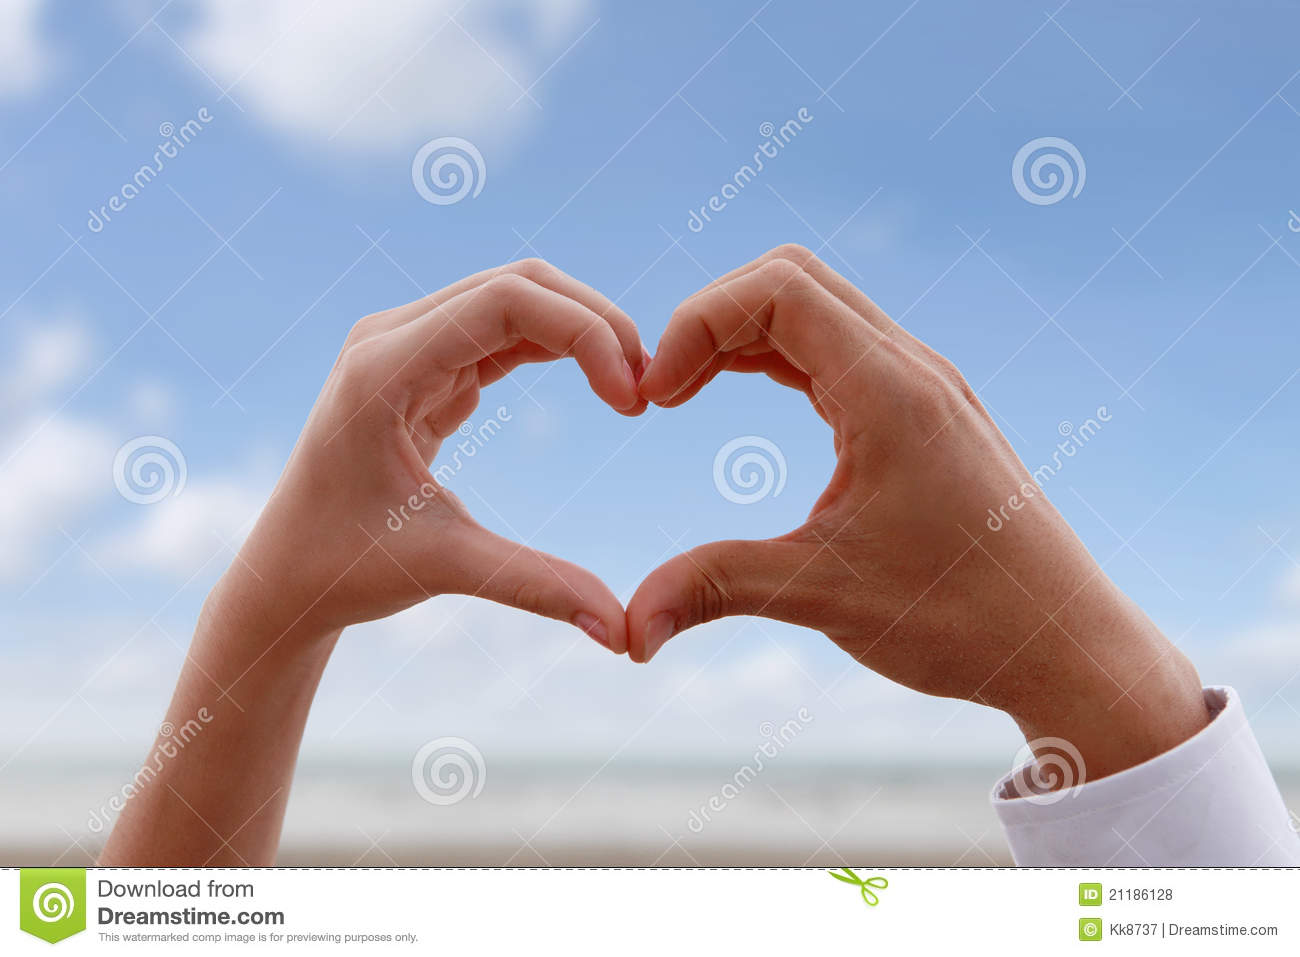 Summer Love Stock Photo Image Of Concept Romantic Hold 21186128